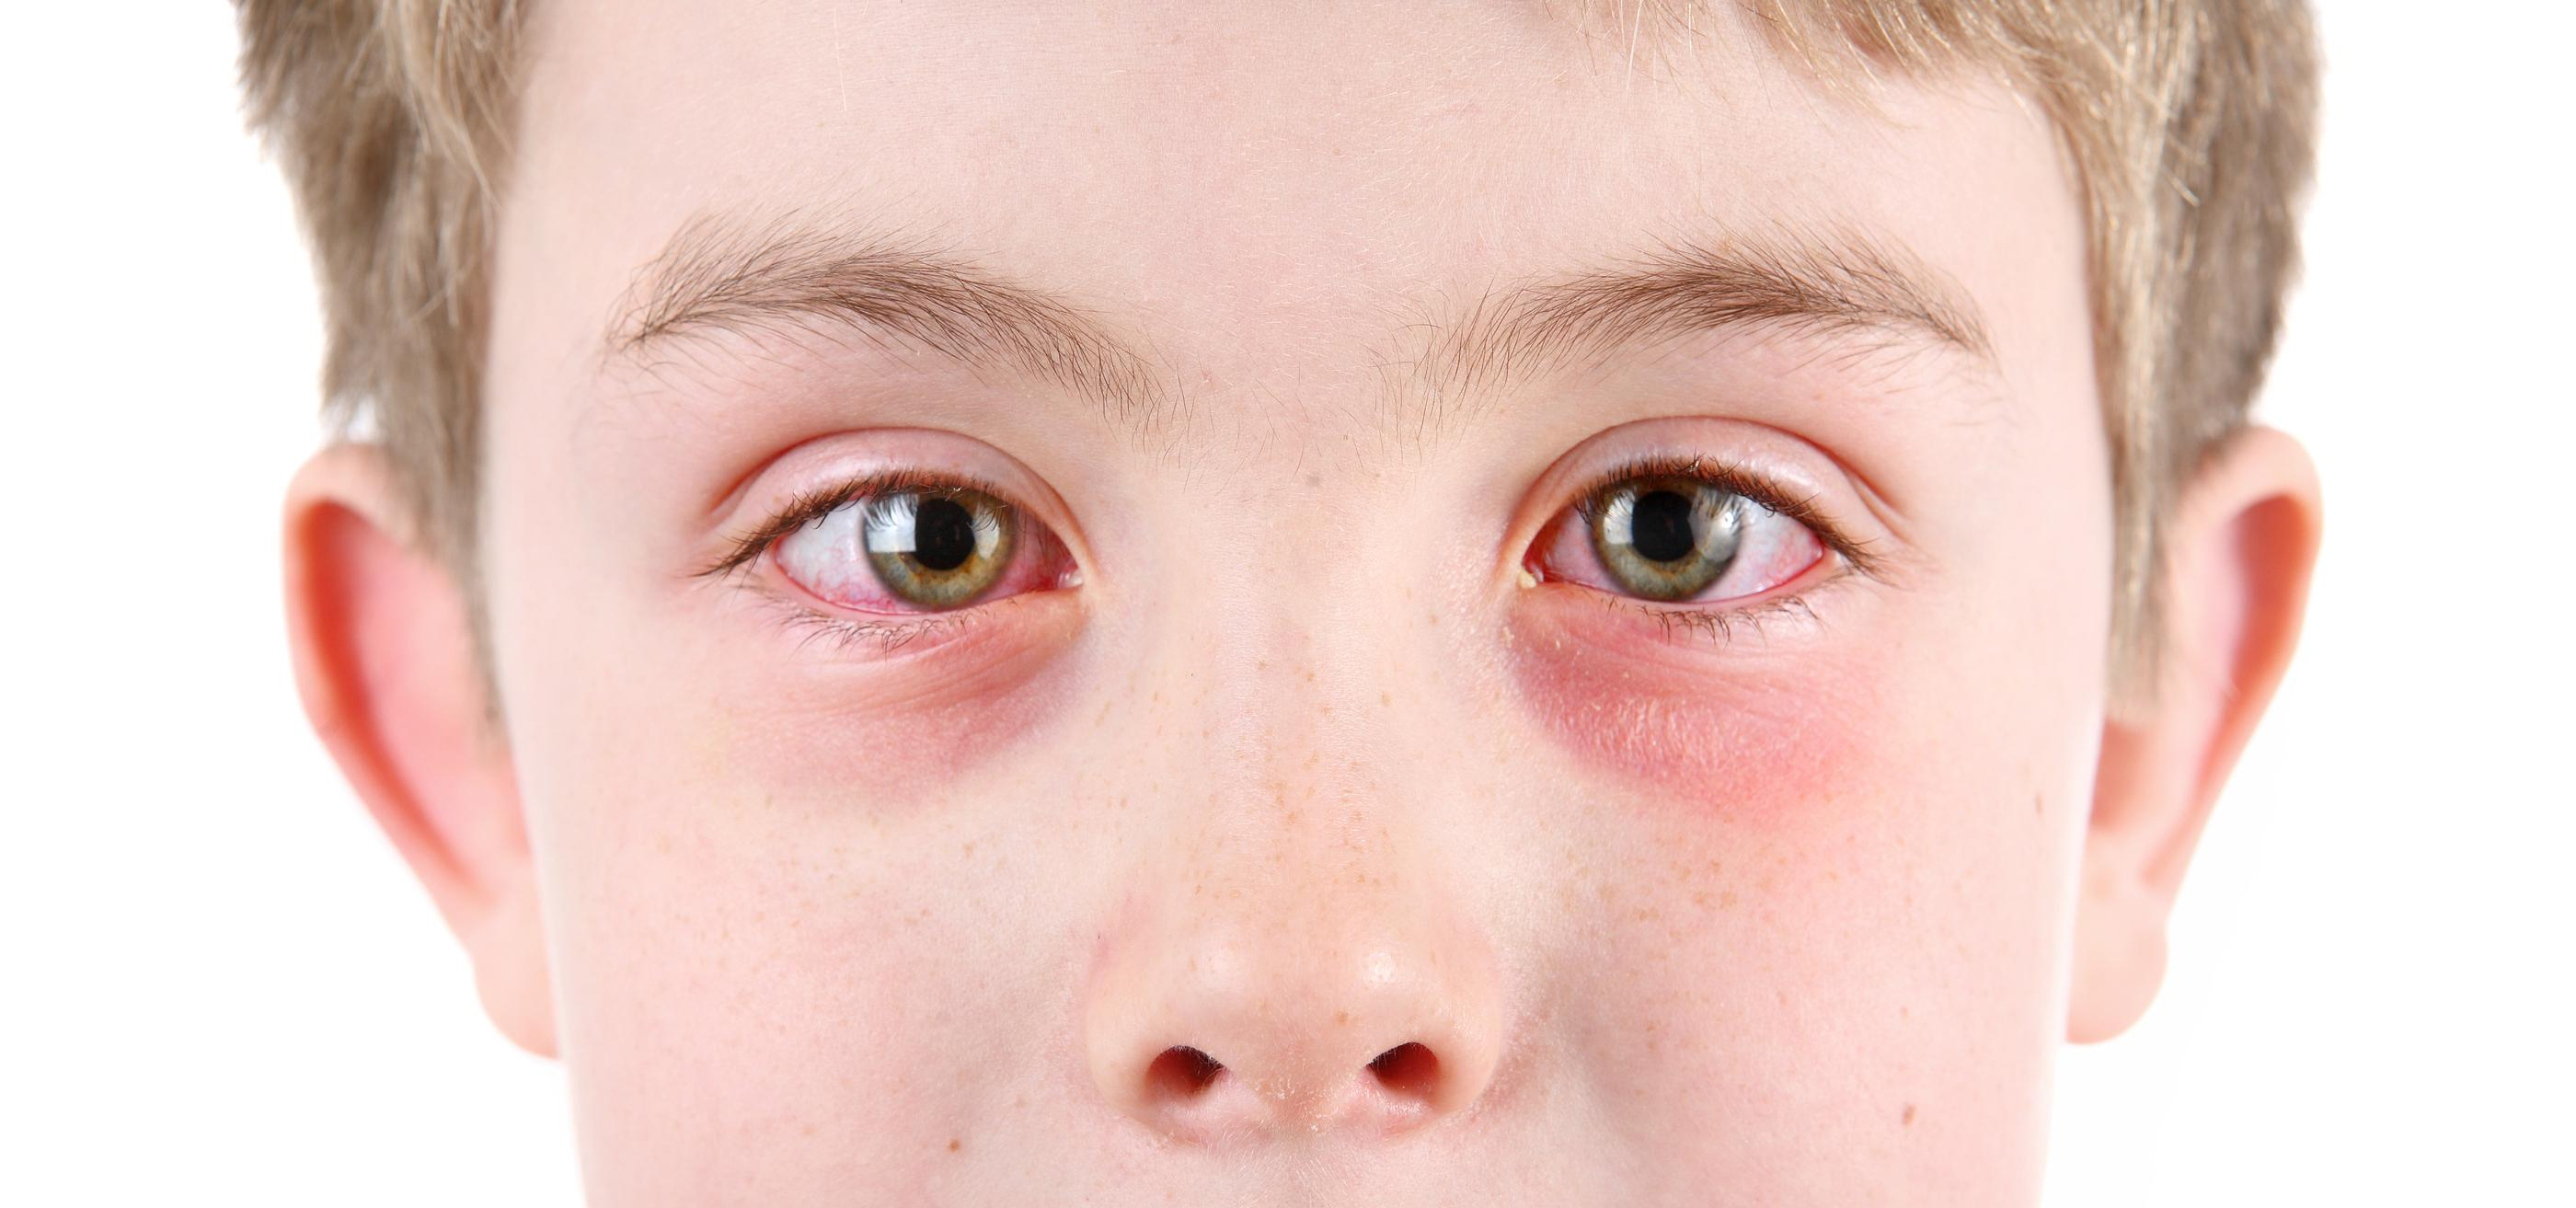 Allergic conjunctivitis in children